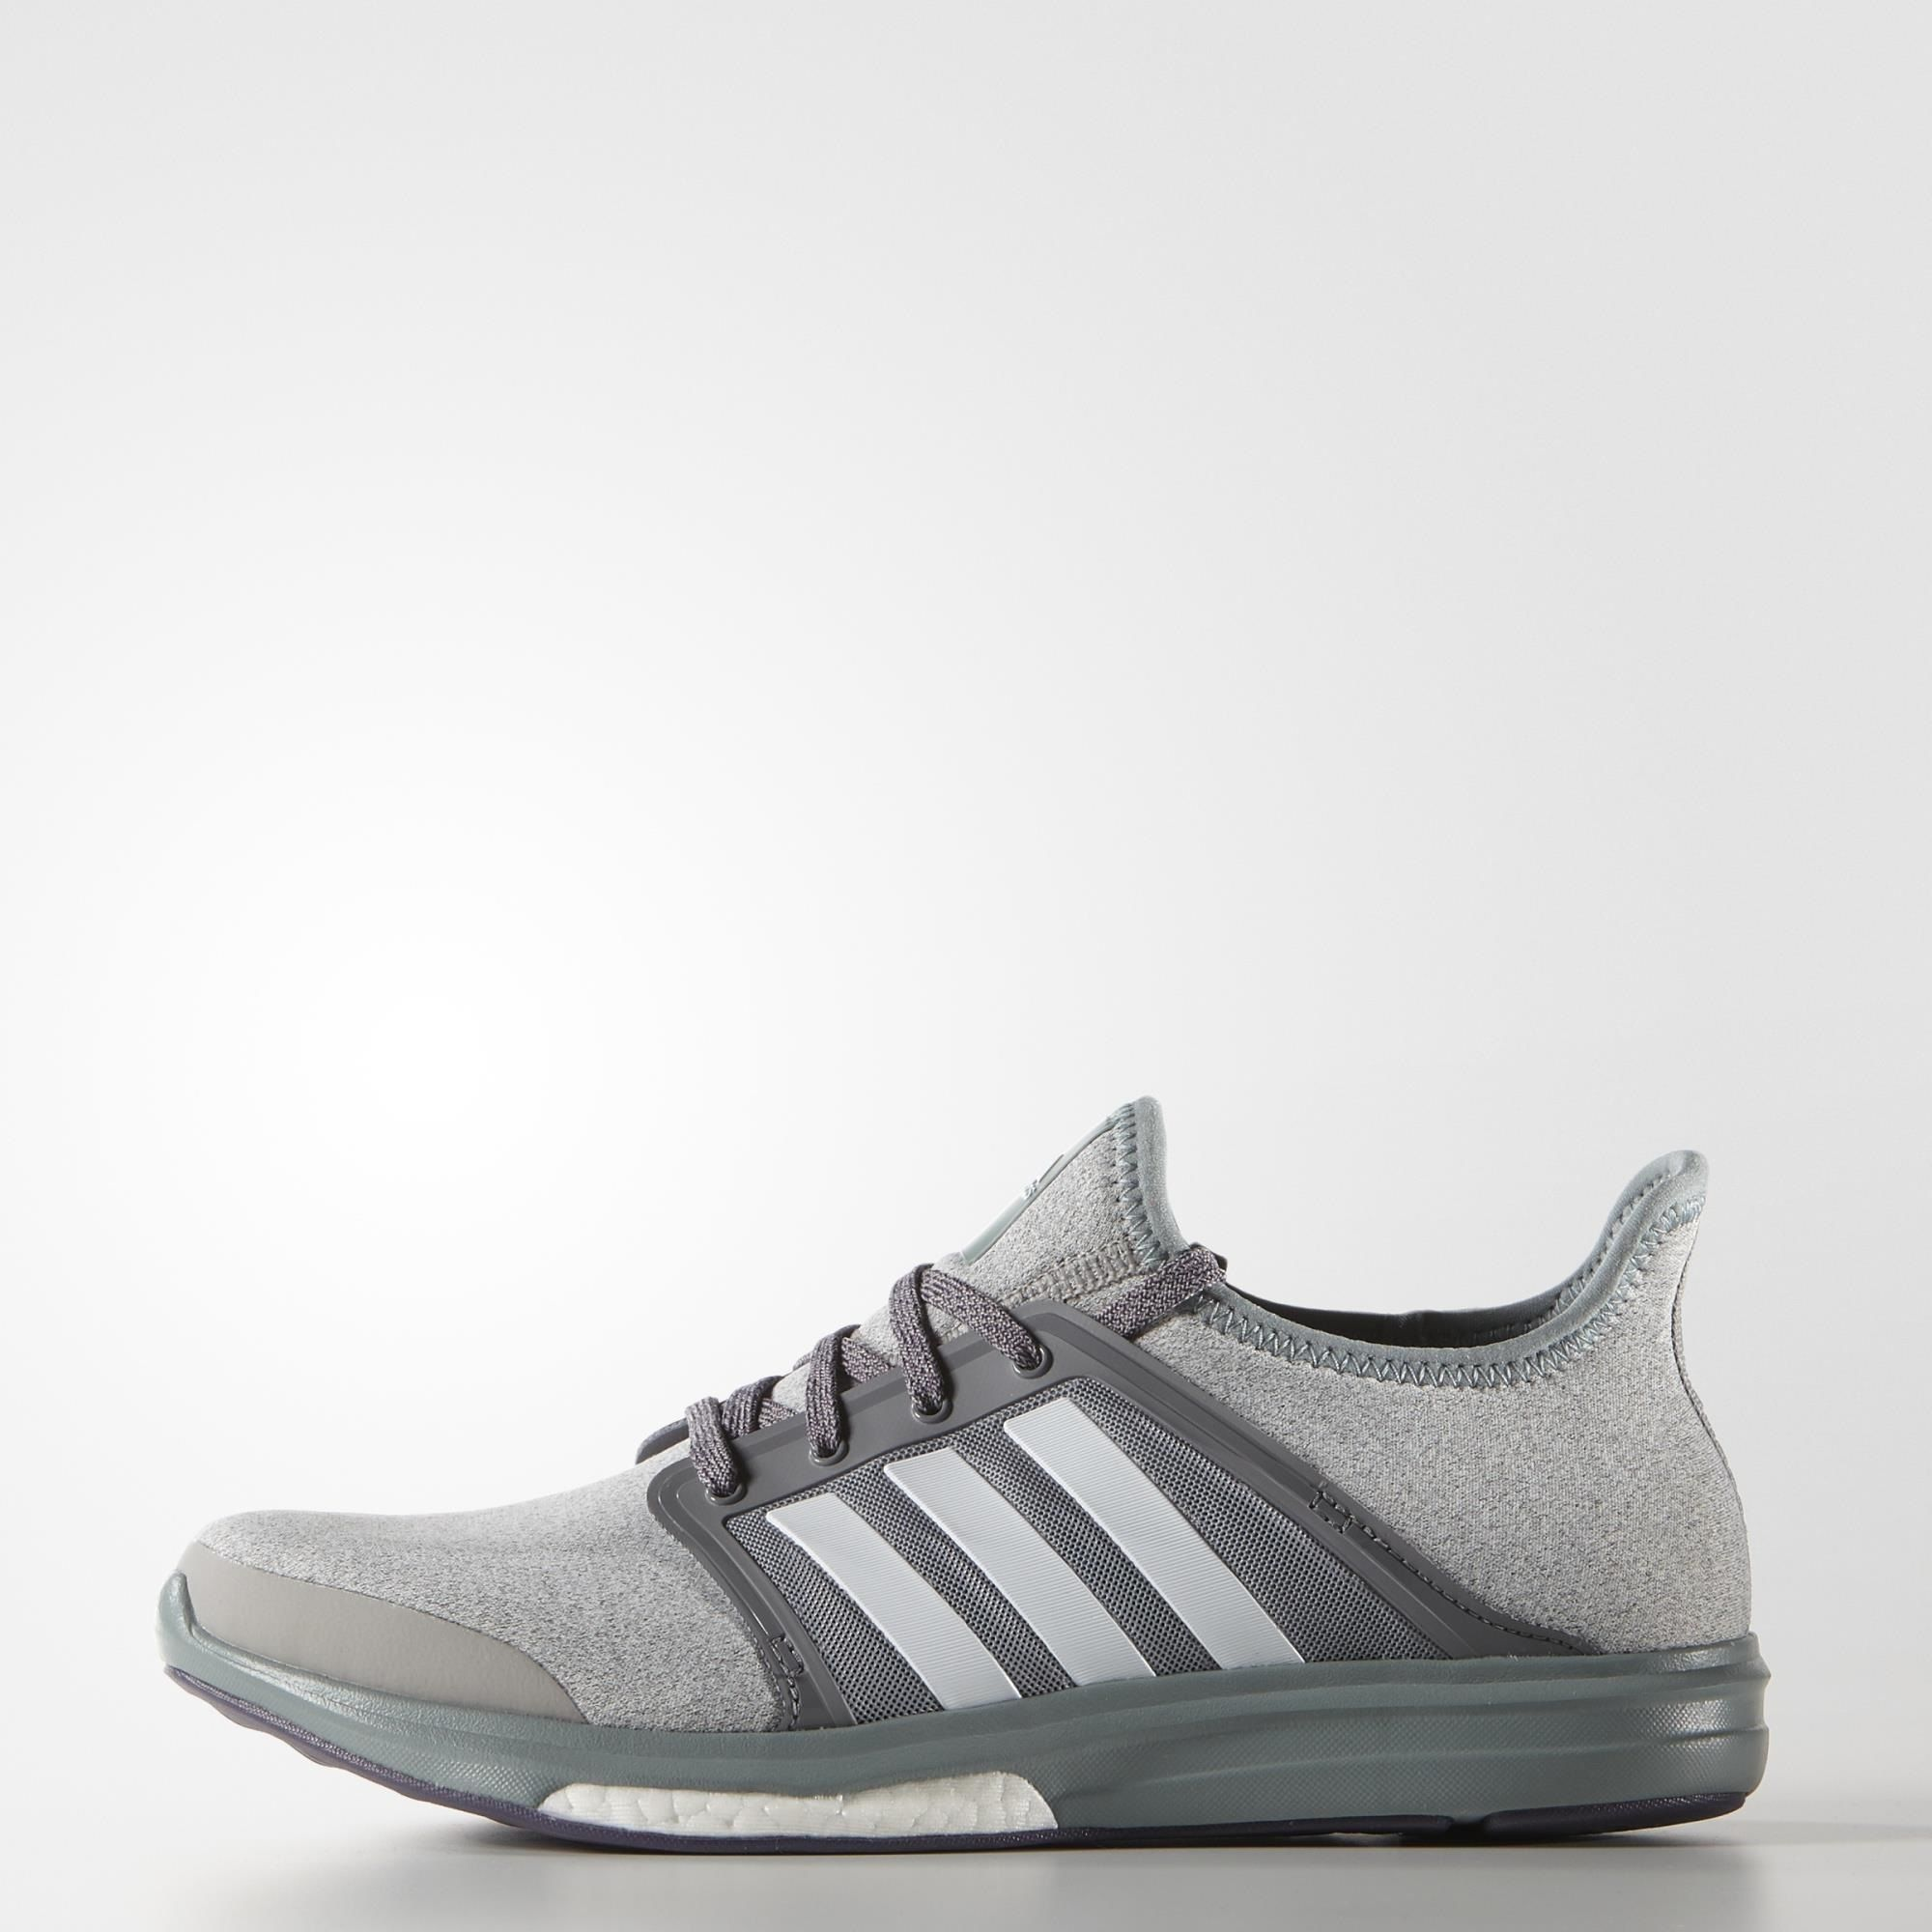 adidas Climachill Sonic Boost AL Shoes Grey | adidas US